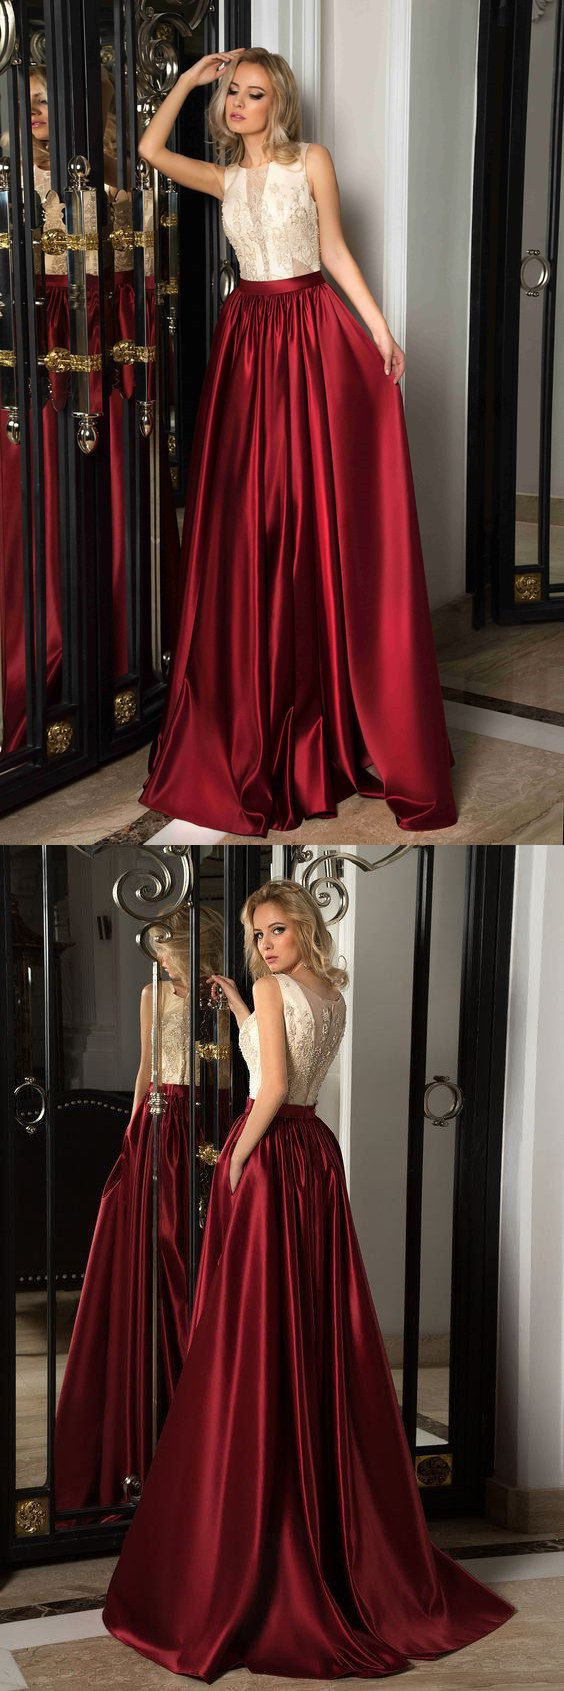 A-Line Lace Sleeveless Scoop Long Satin Prom Dress With Illusion Back And